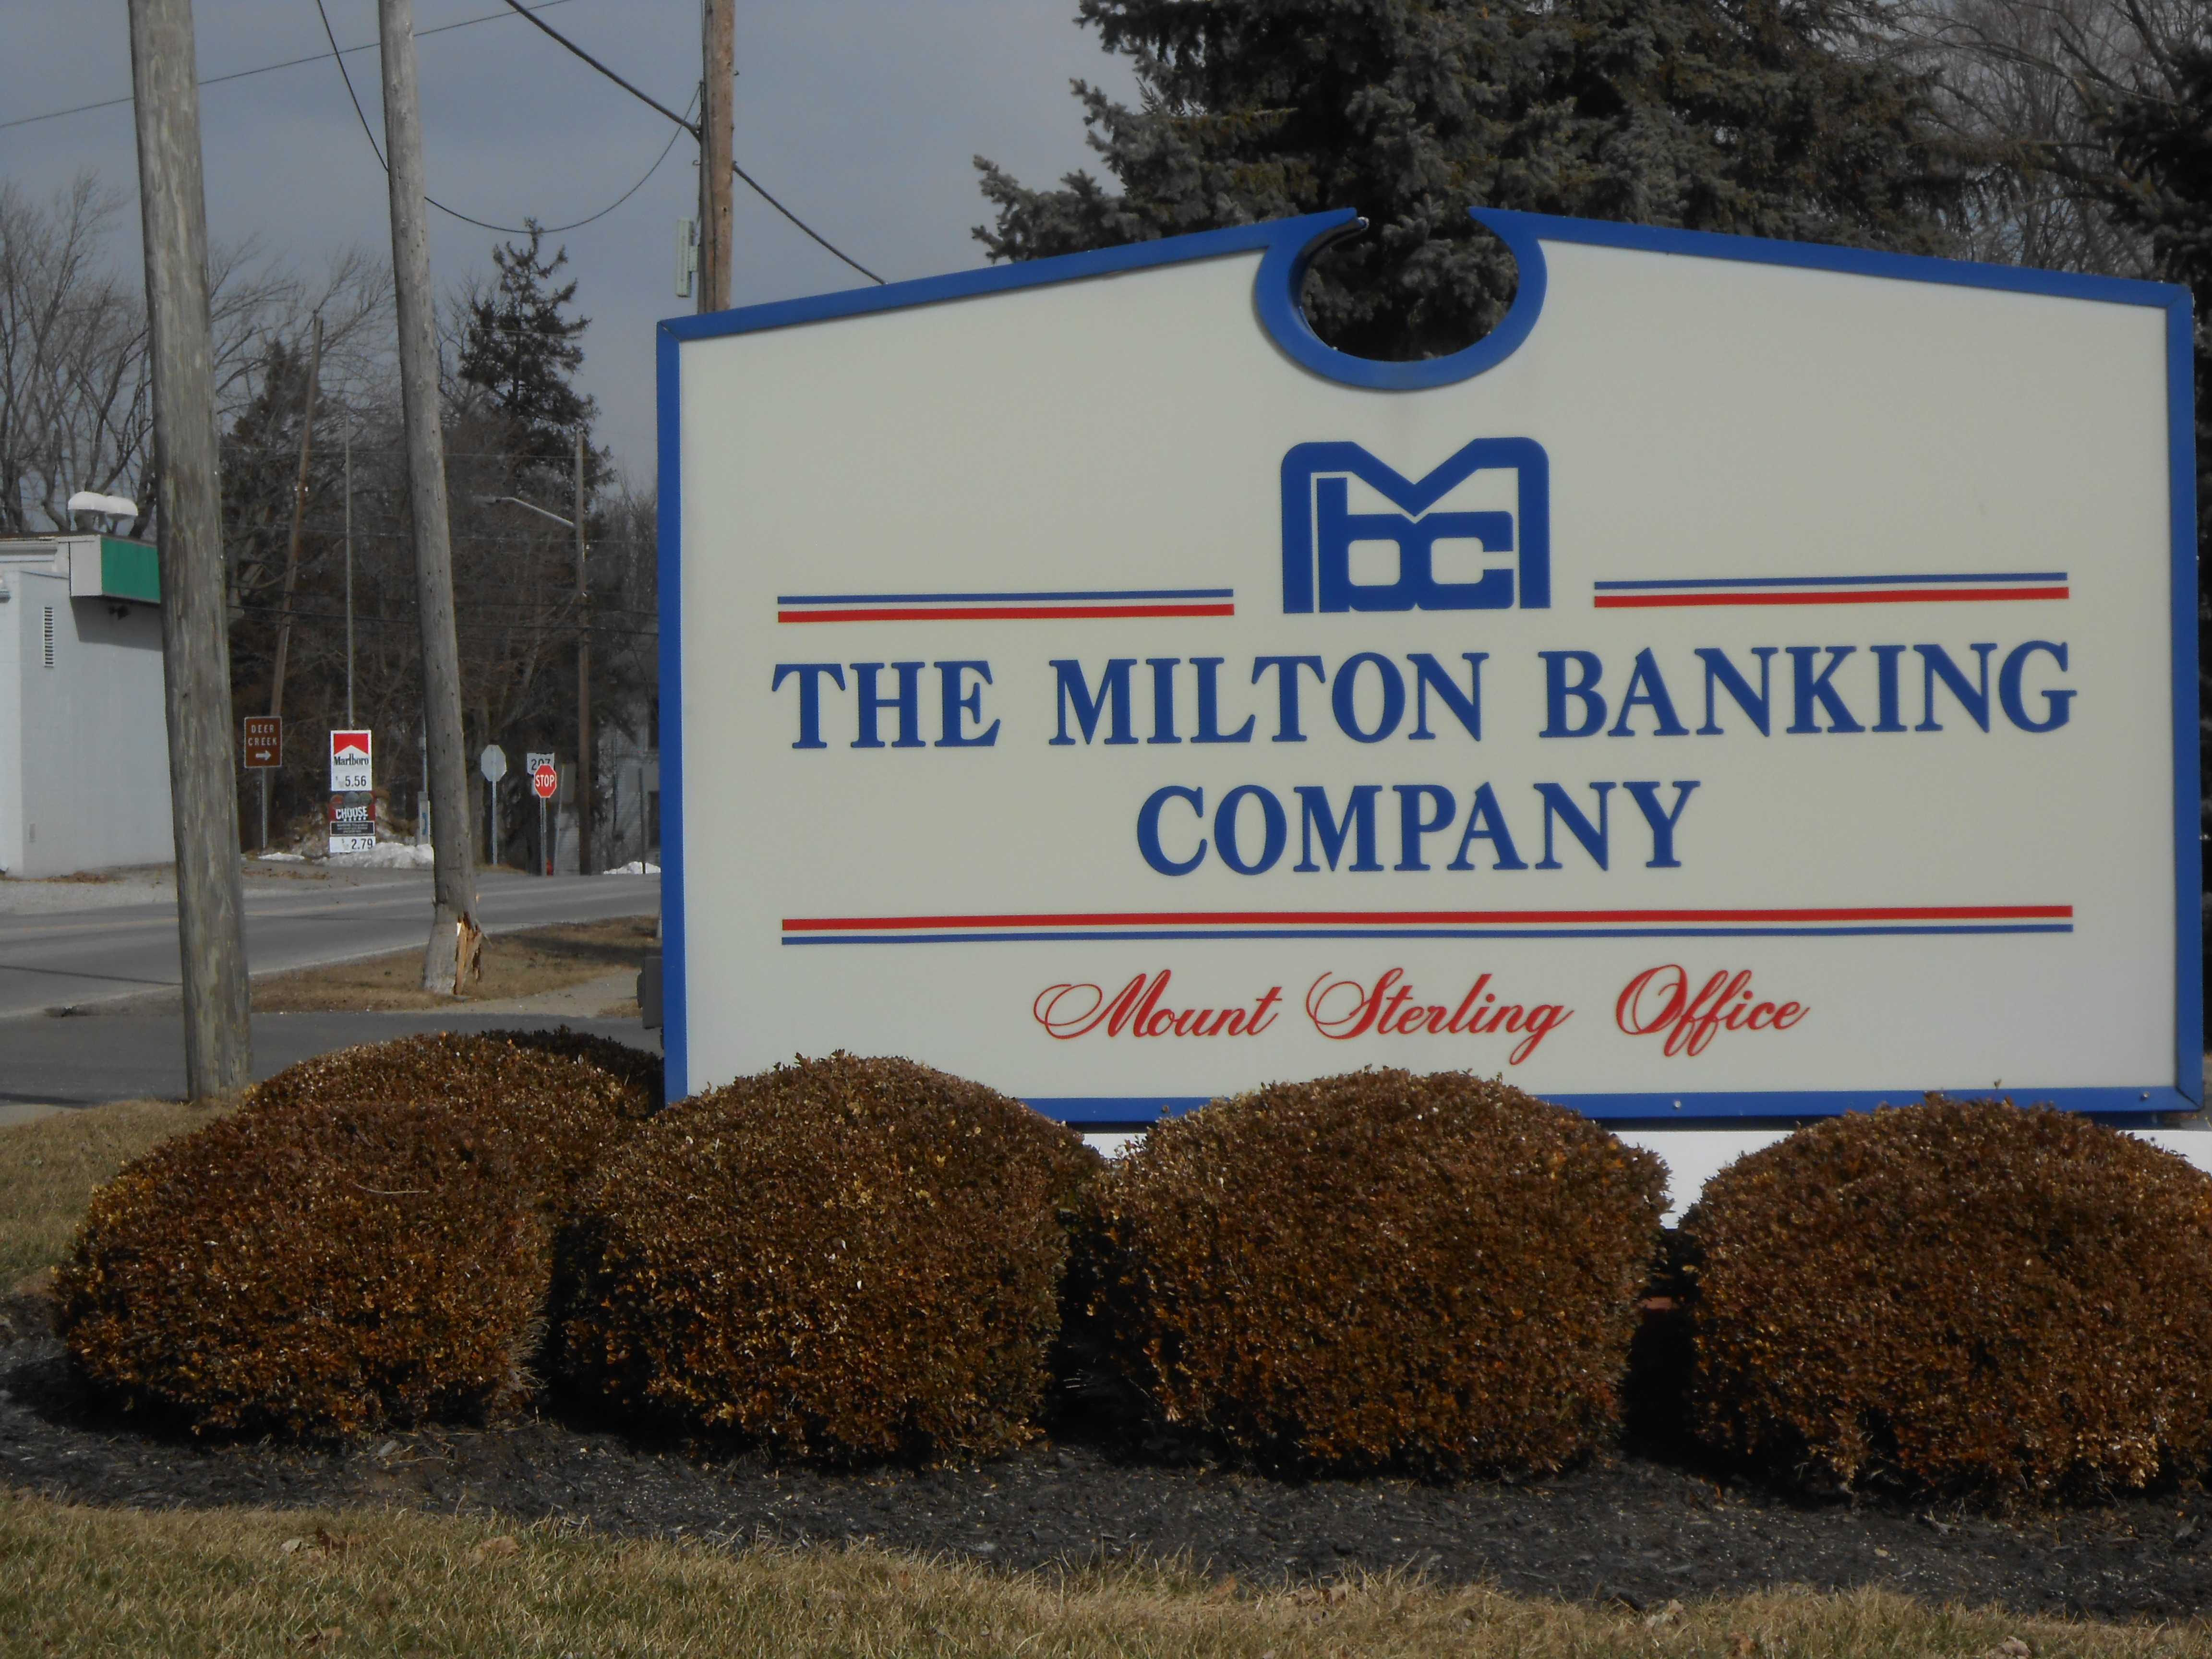 The Milton Banking Company